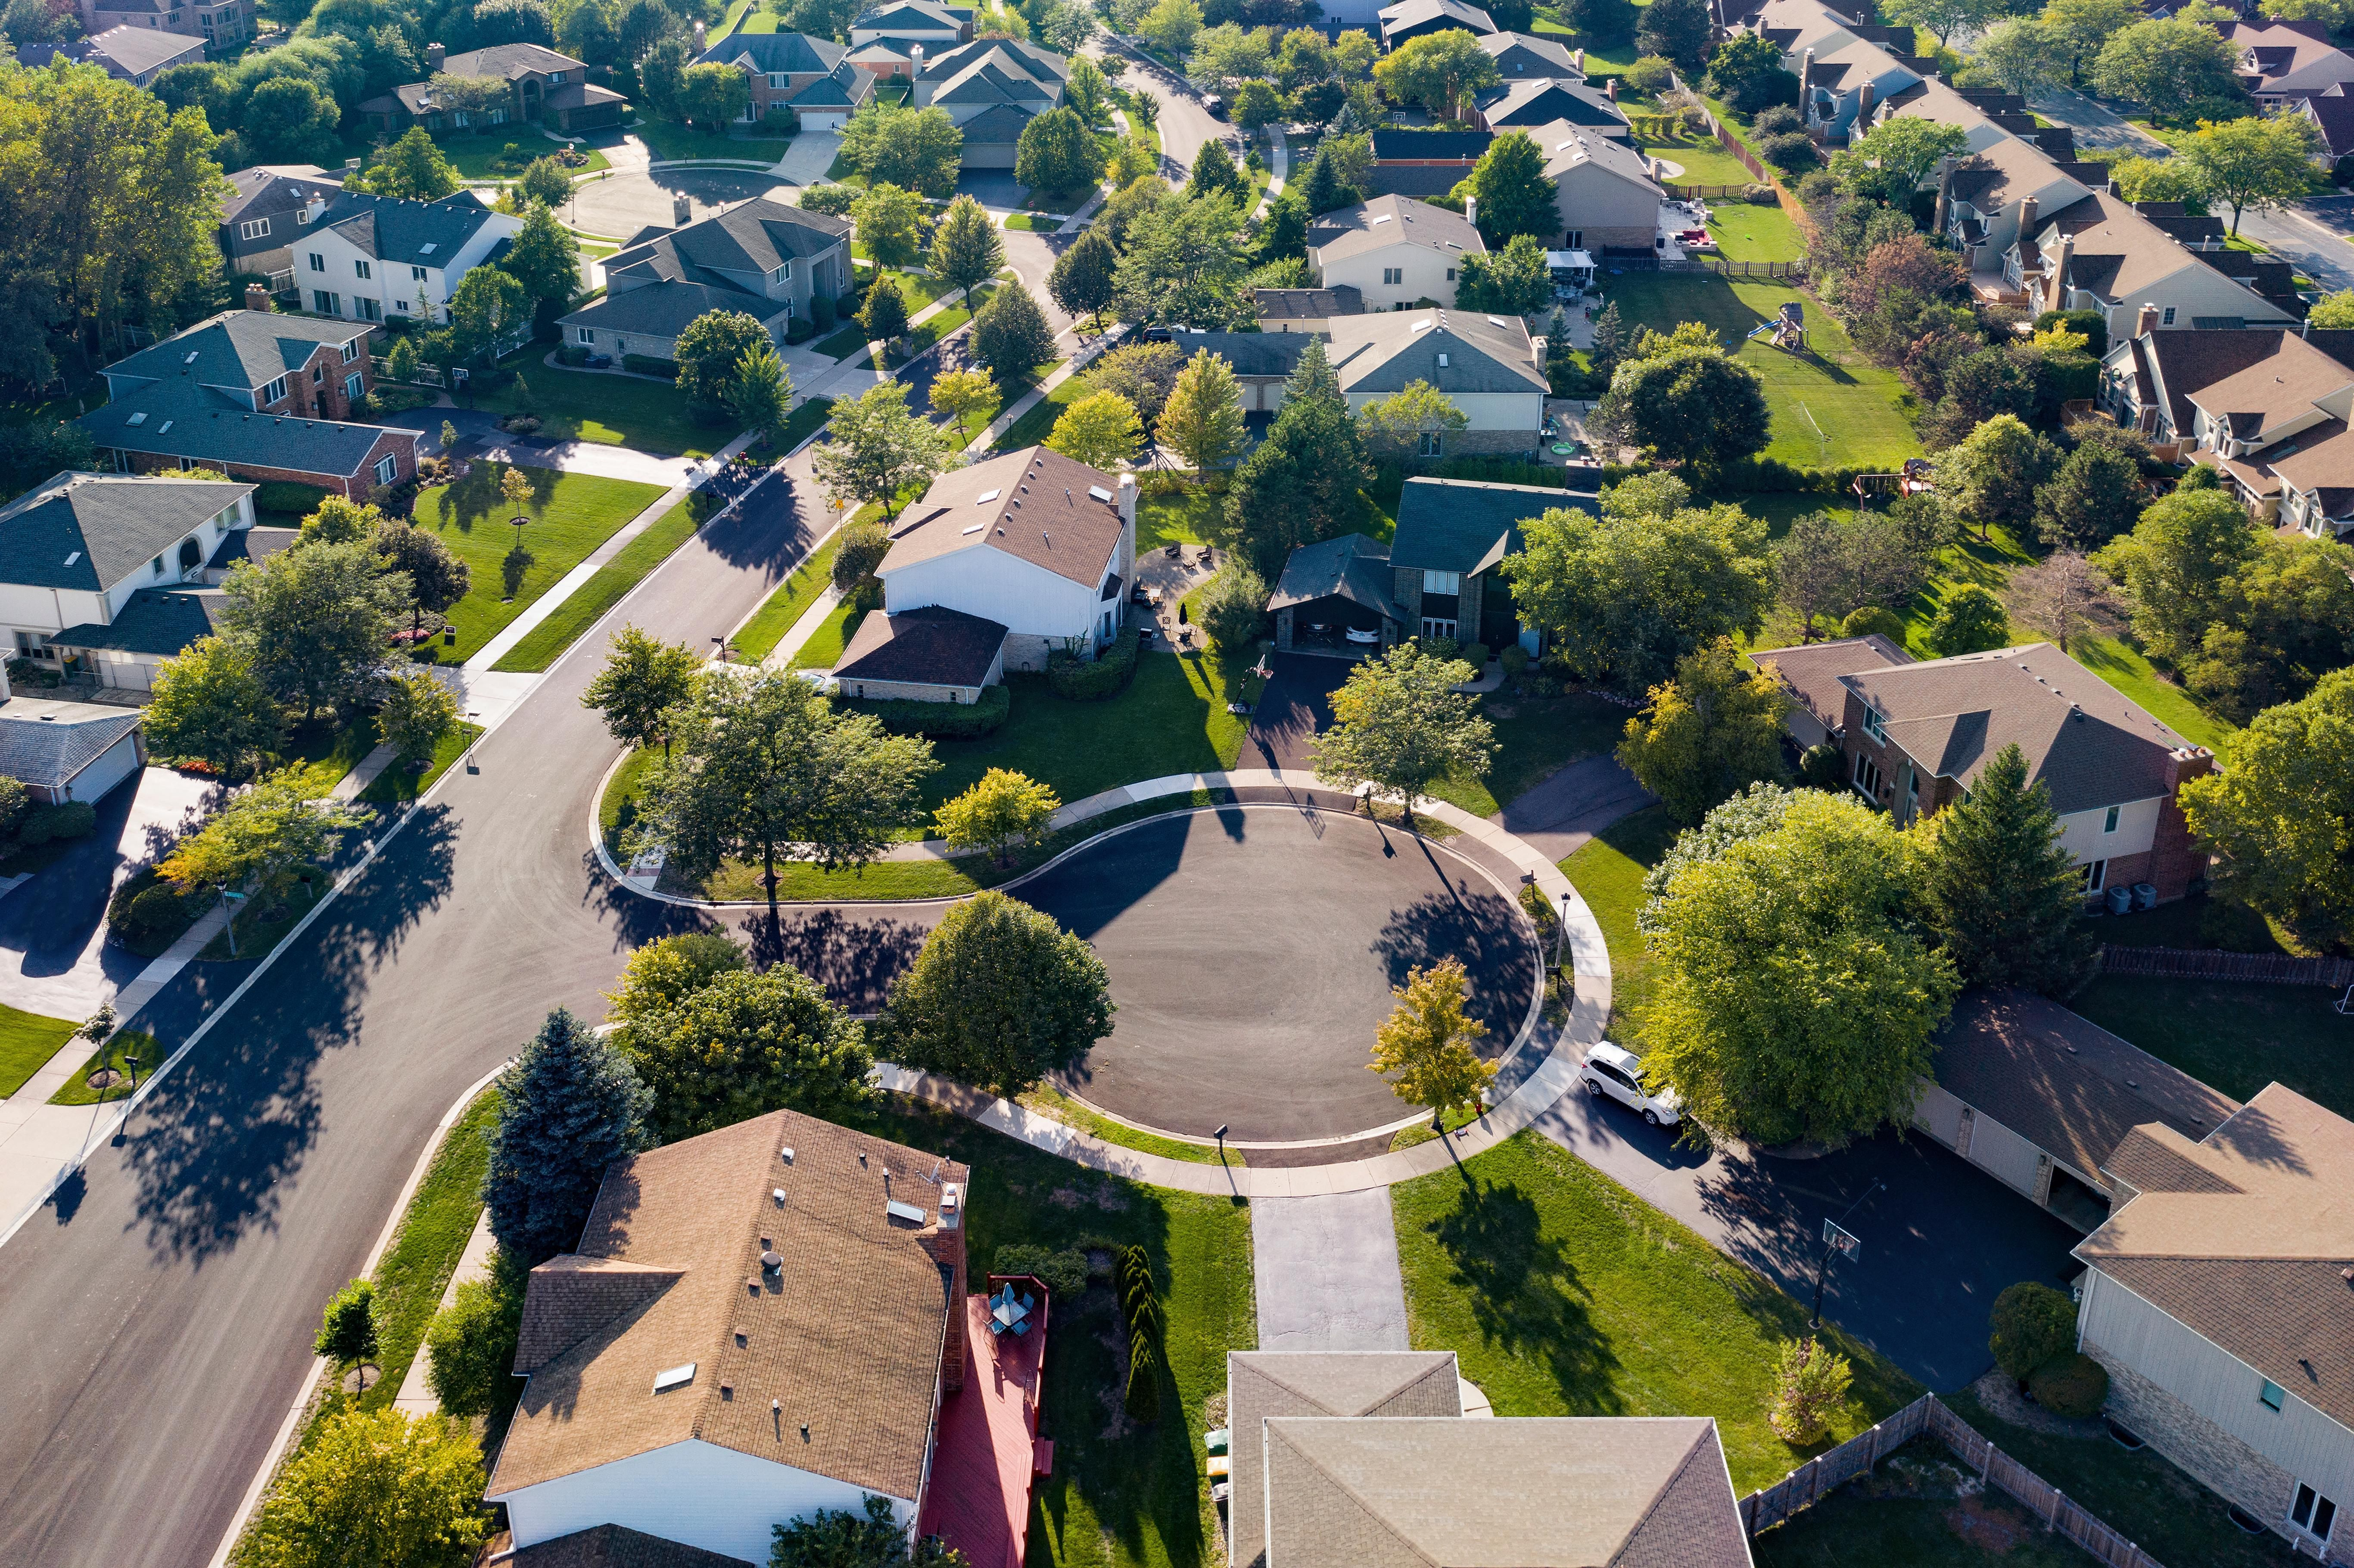 Where Does The U S Housing Market Go From Here Five Experts Share Predictions For The Rest Of 2020 In 2020 Housing Market Refinance Loans Lowest Mortgage Rates